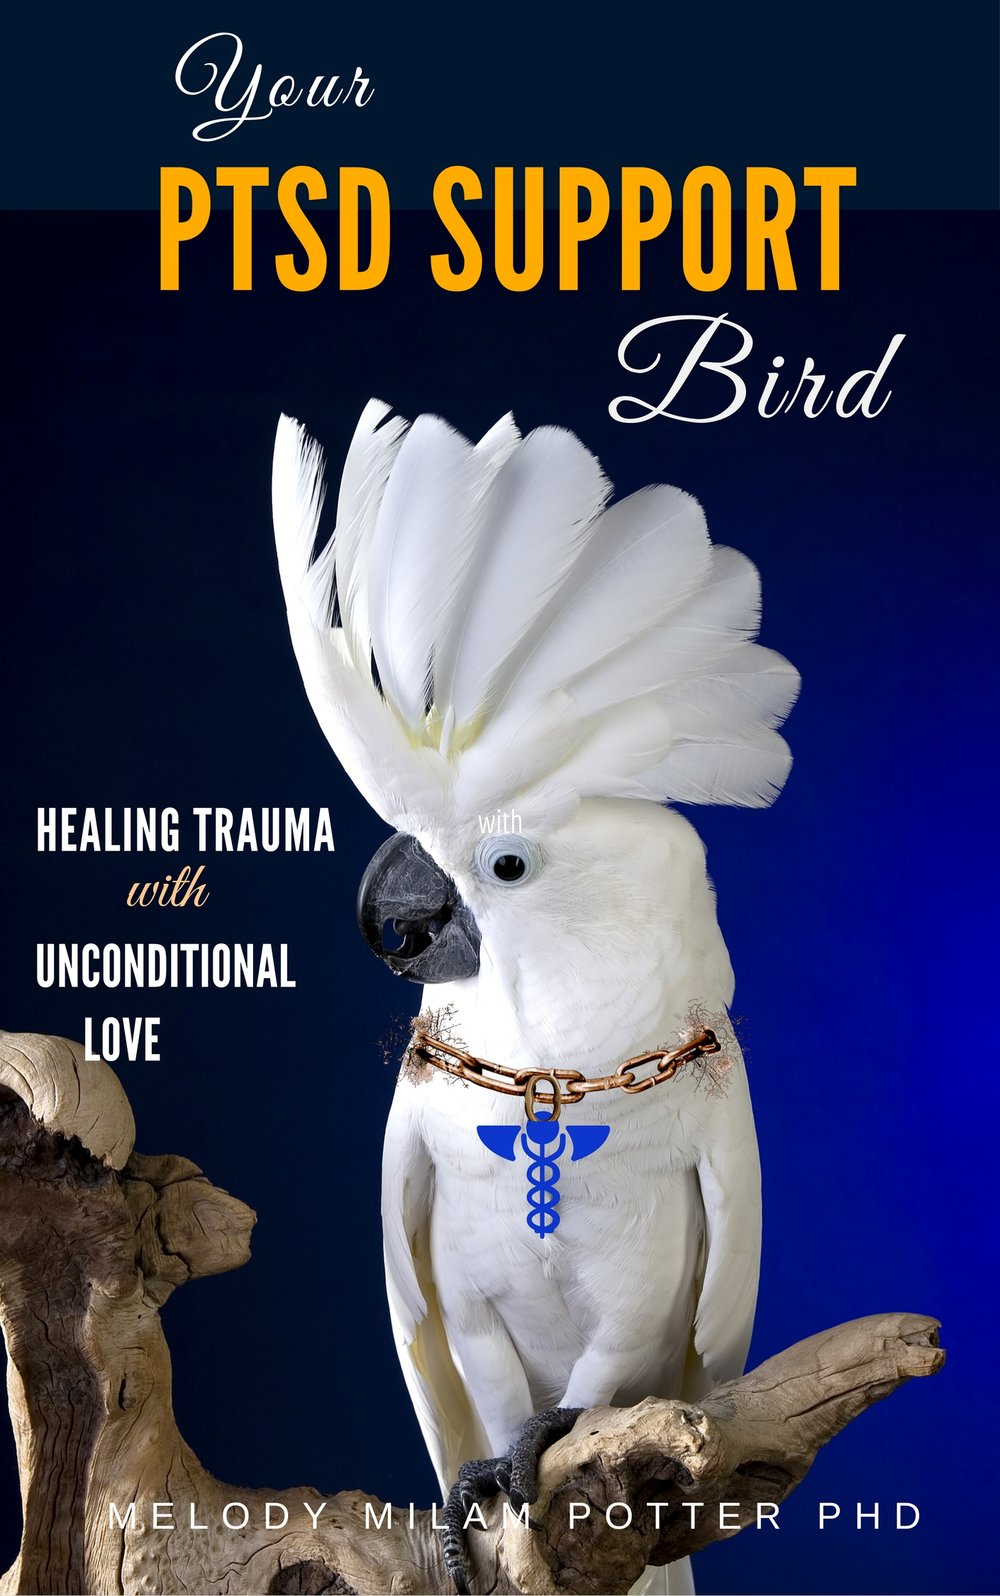 Learn how the love of a parrot can treat PTSD even when psychotherapy can't.